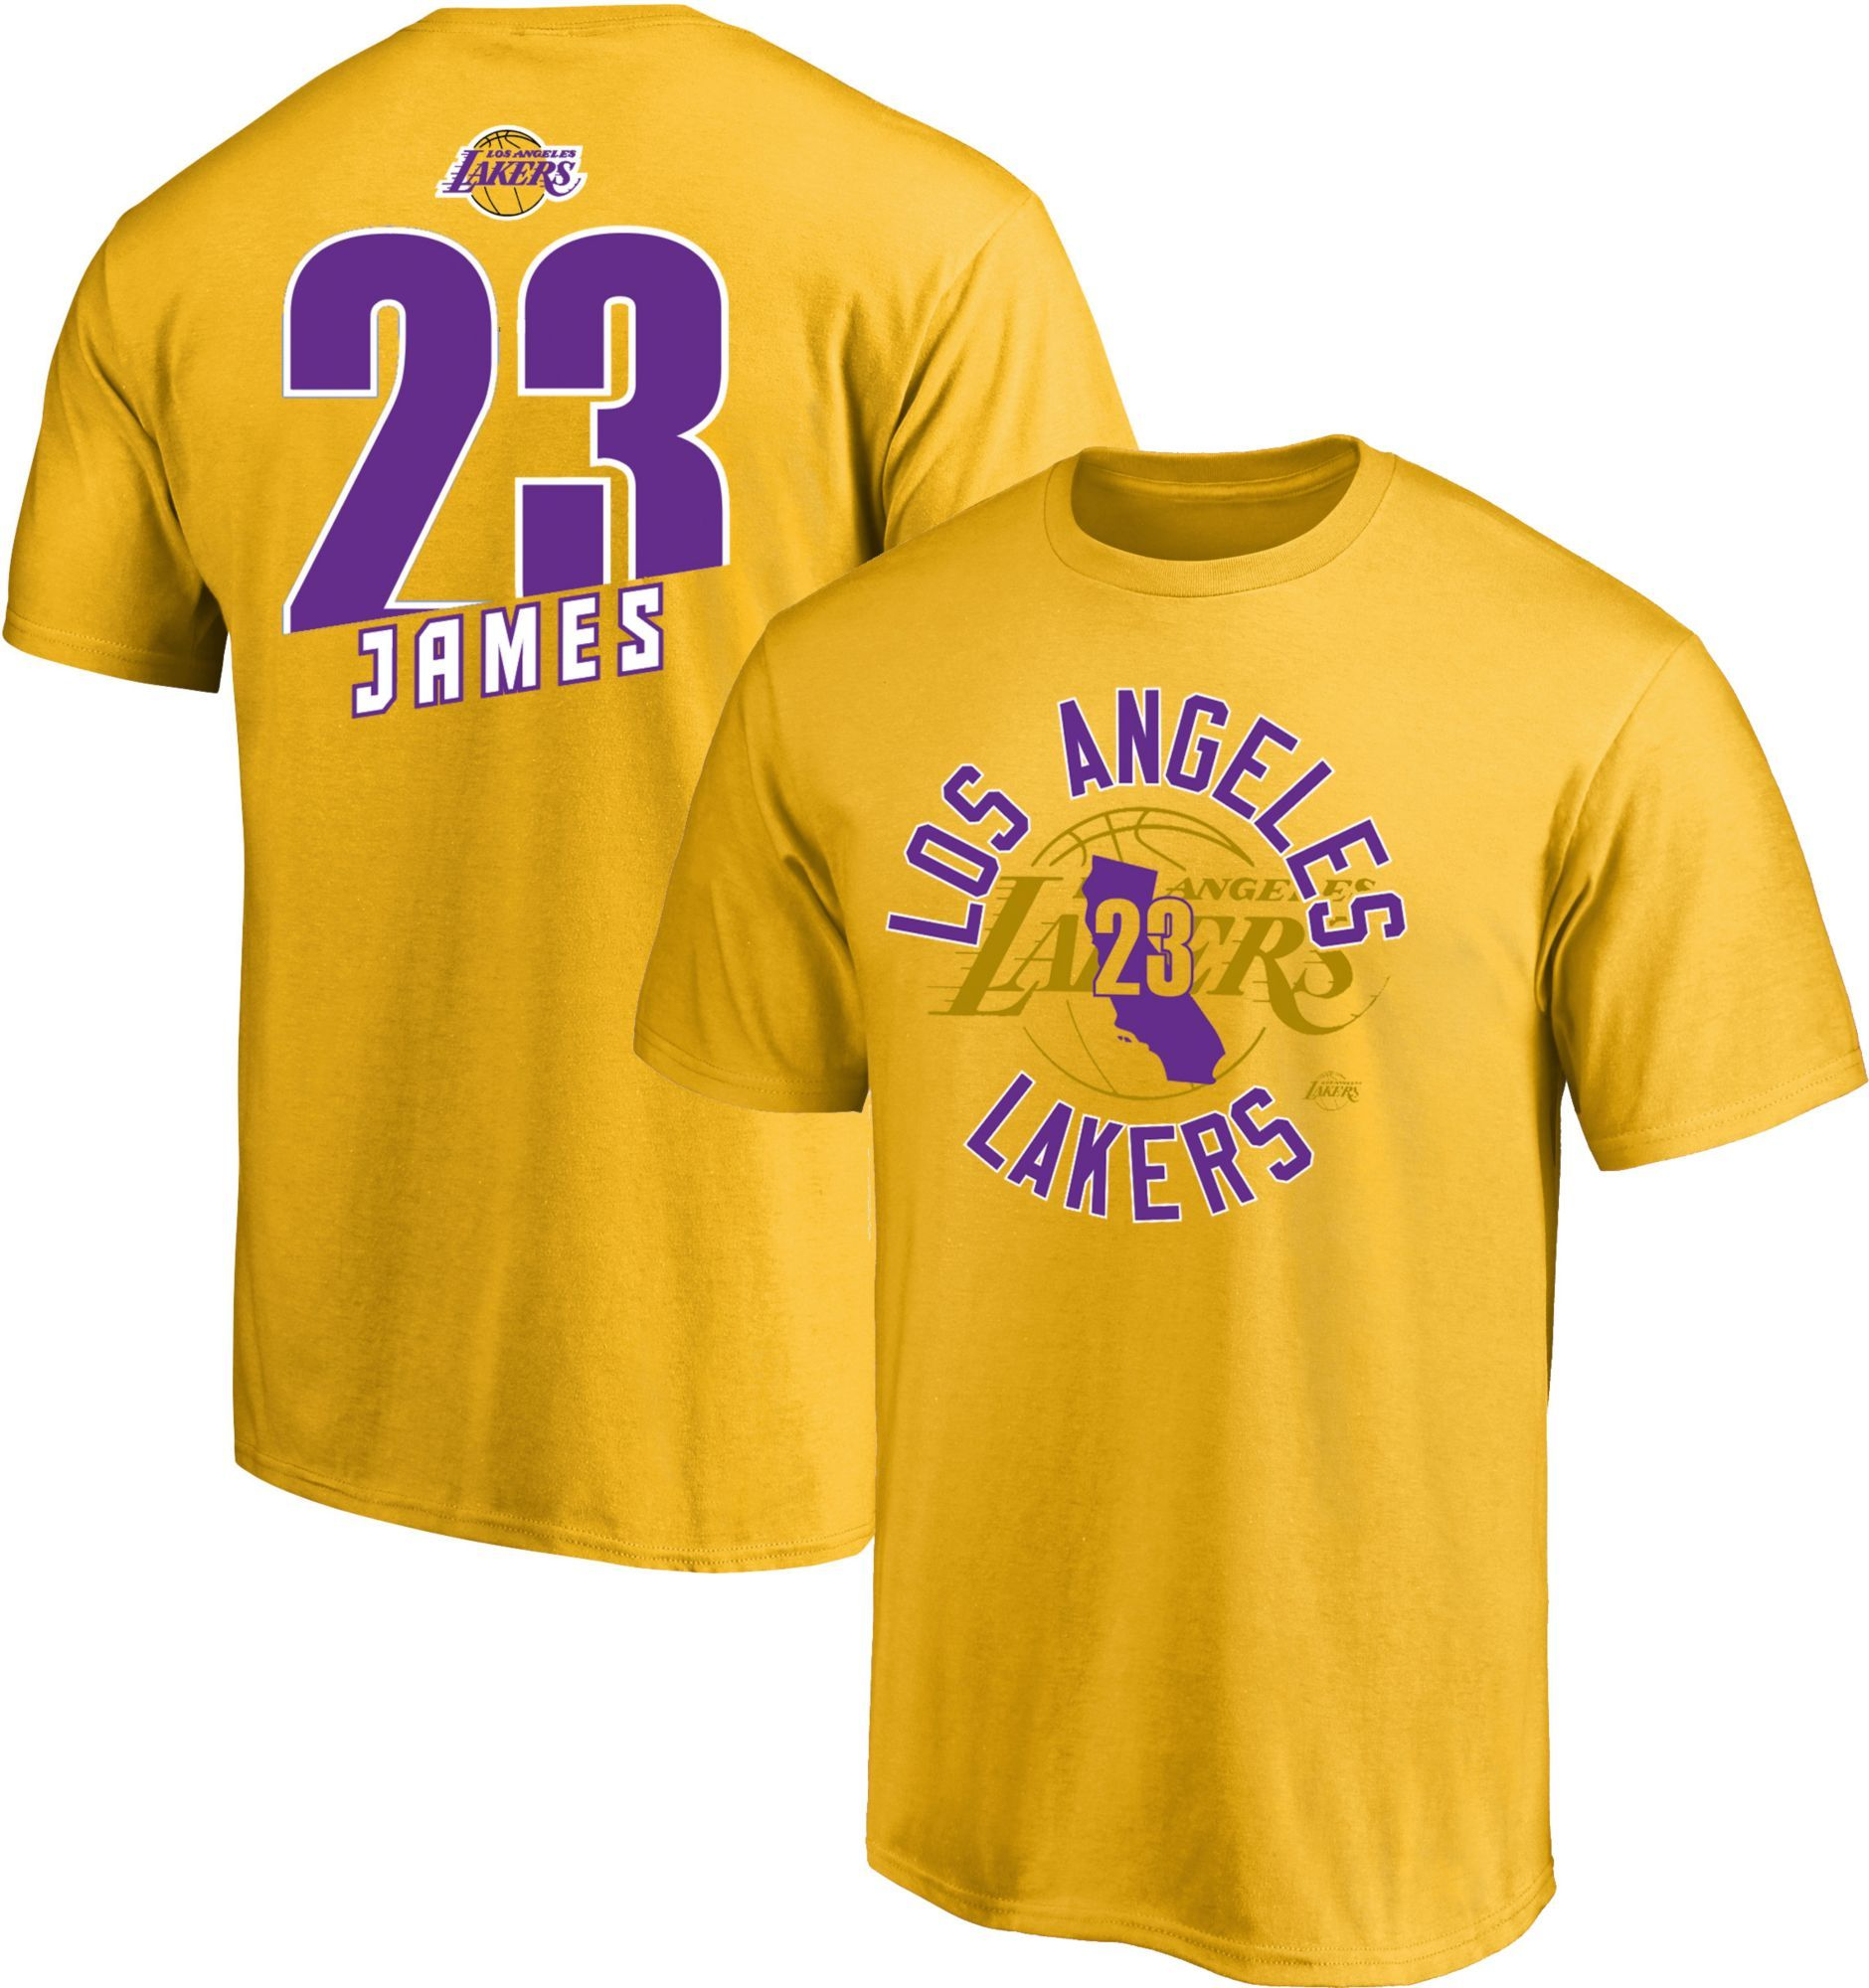 best website 6d837 428e9 Majestic Men's Los Angeles Lakers LeBron James #23 Gold T ...